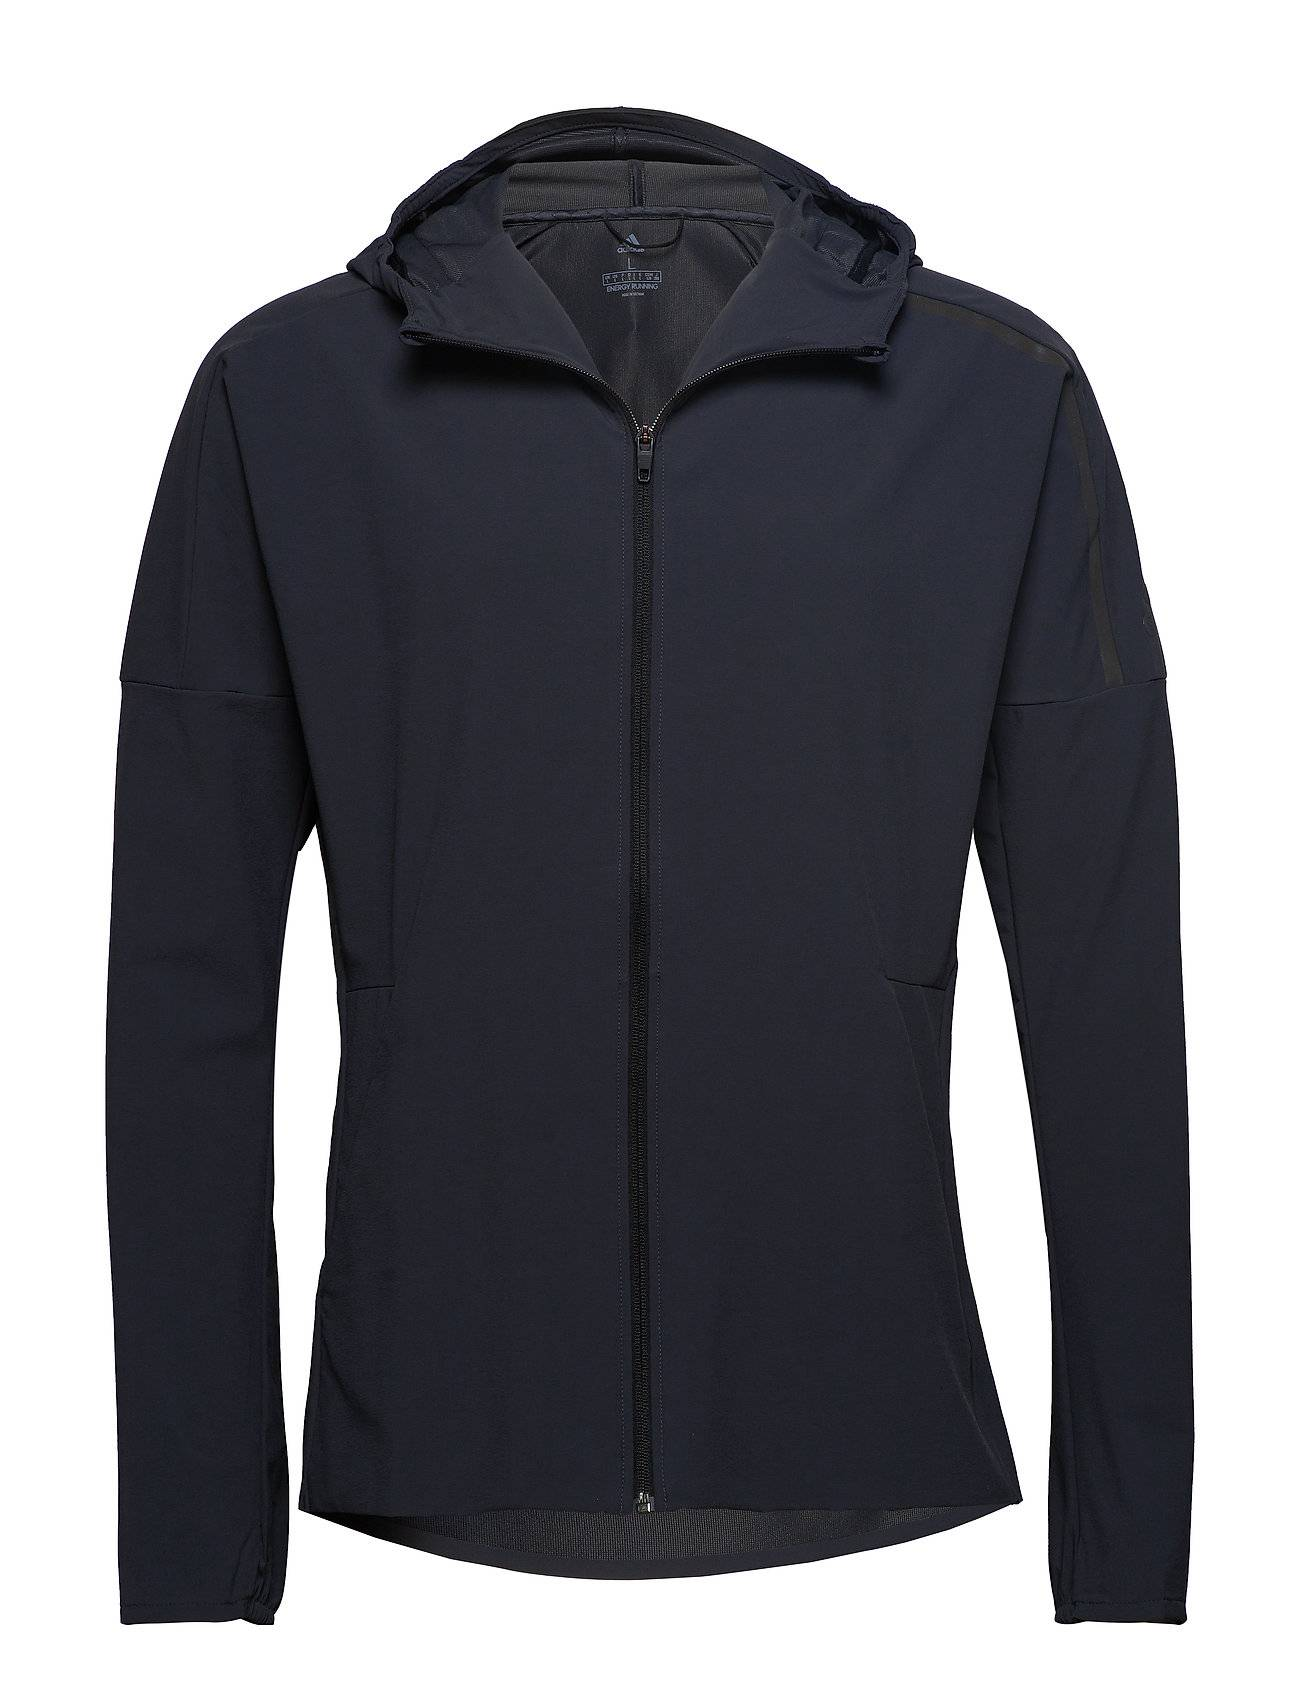 Image of adidas Performance Z.N.E. Jacket M Outerwear Sport Jackets Musta